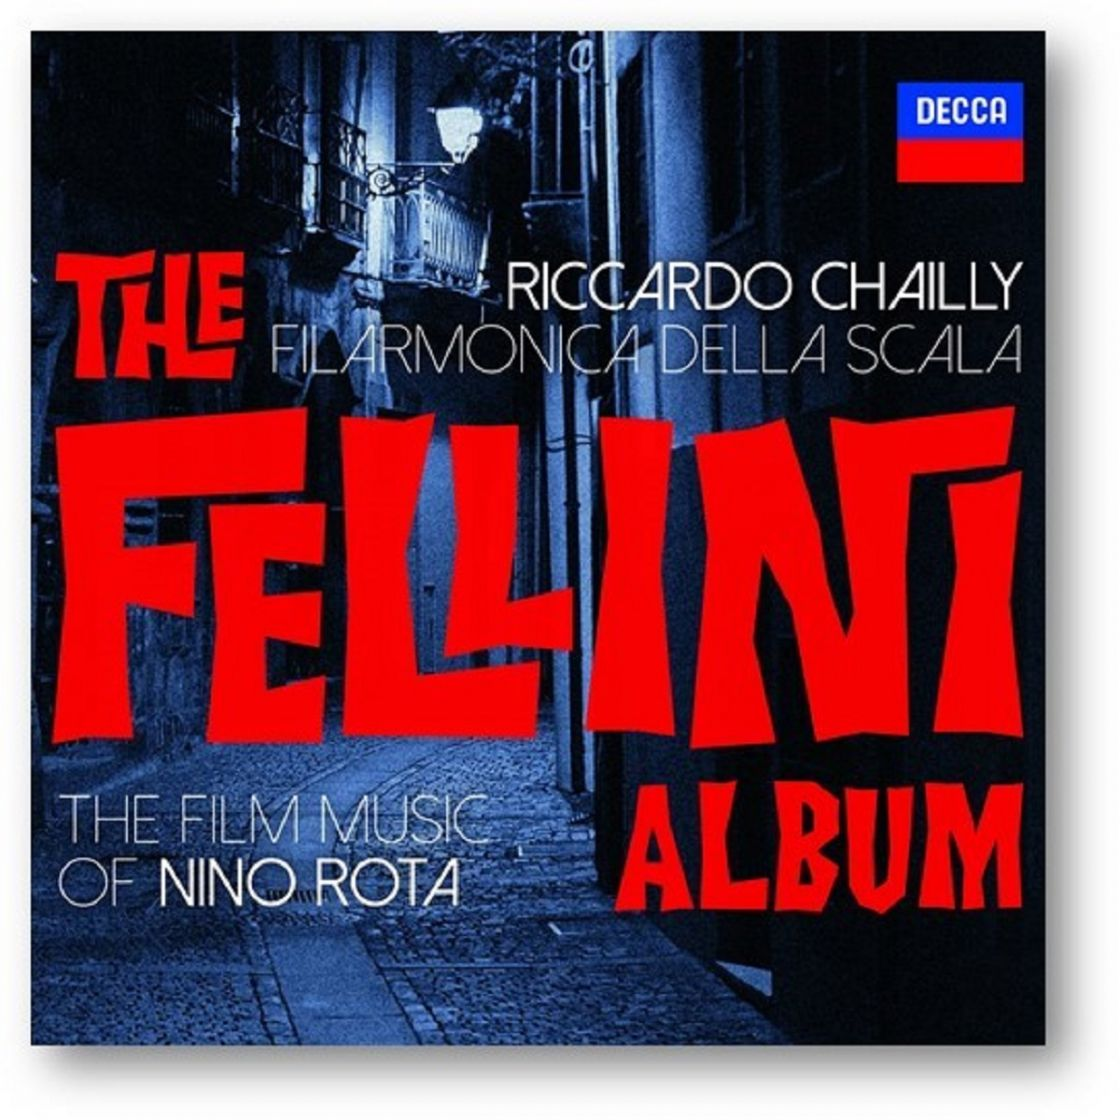 RICCARDO CHAILLY - THE FELLINI ALBUM'